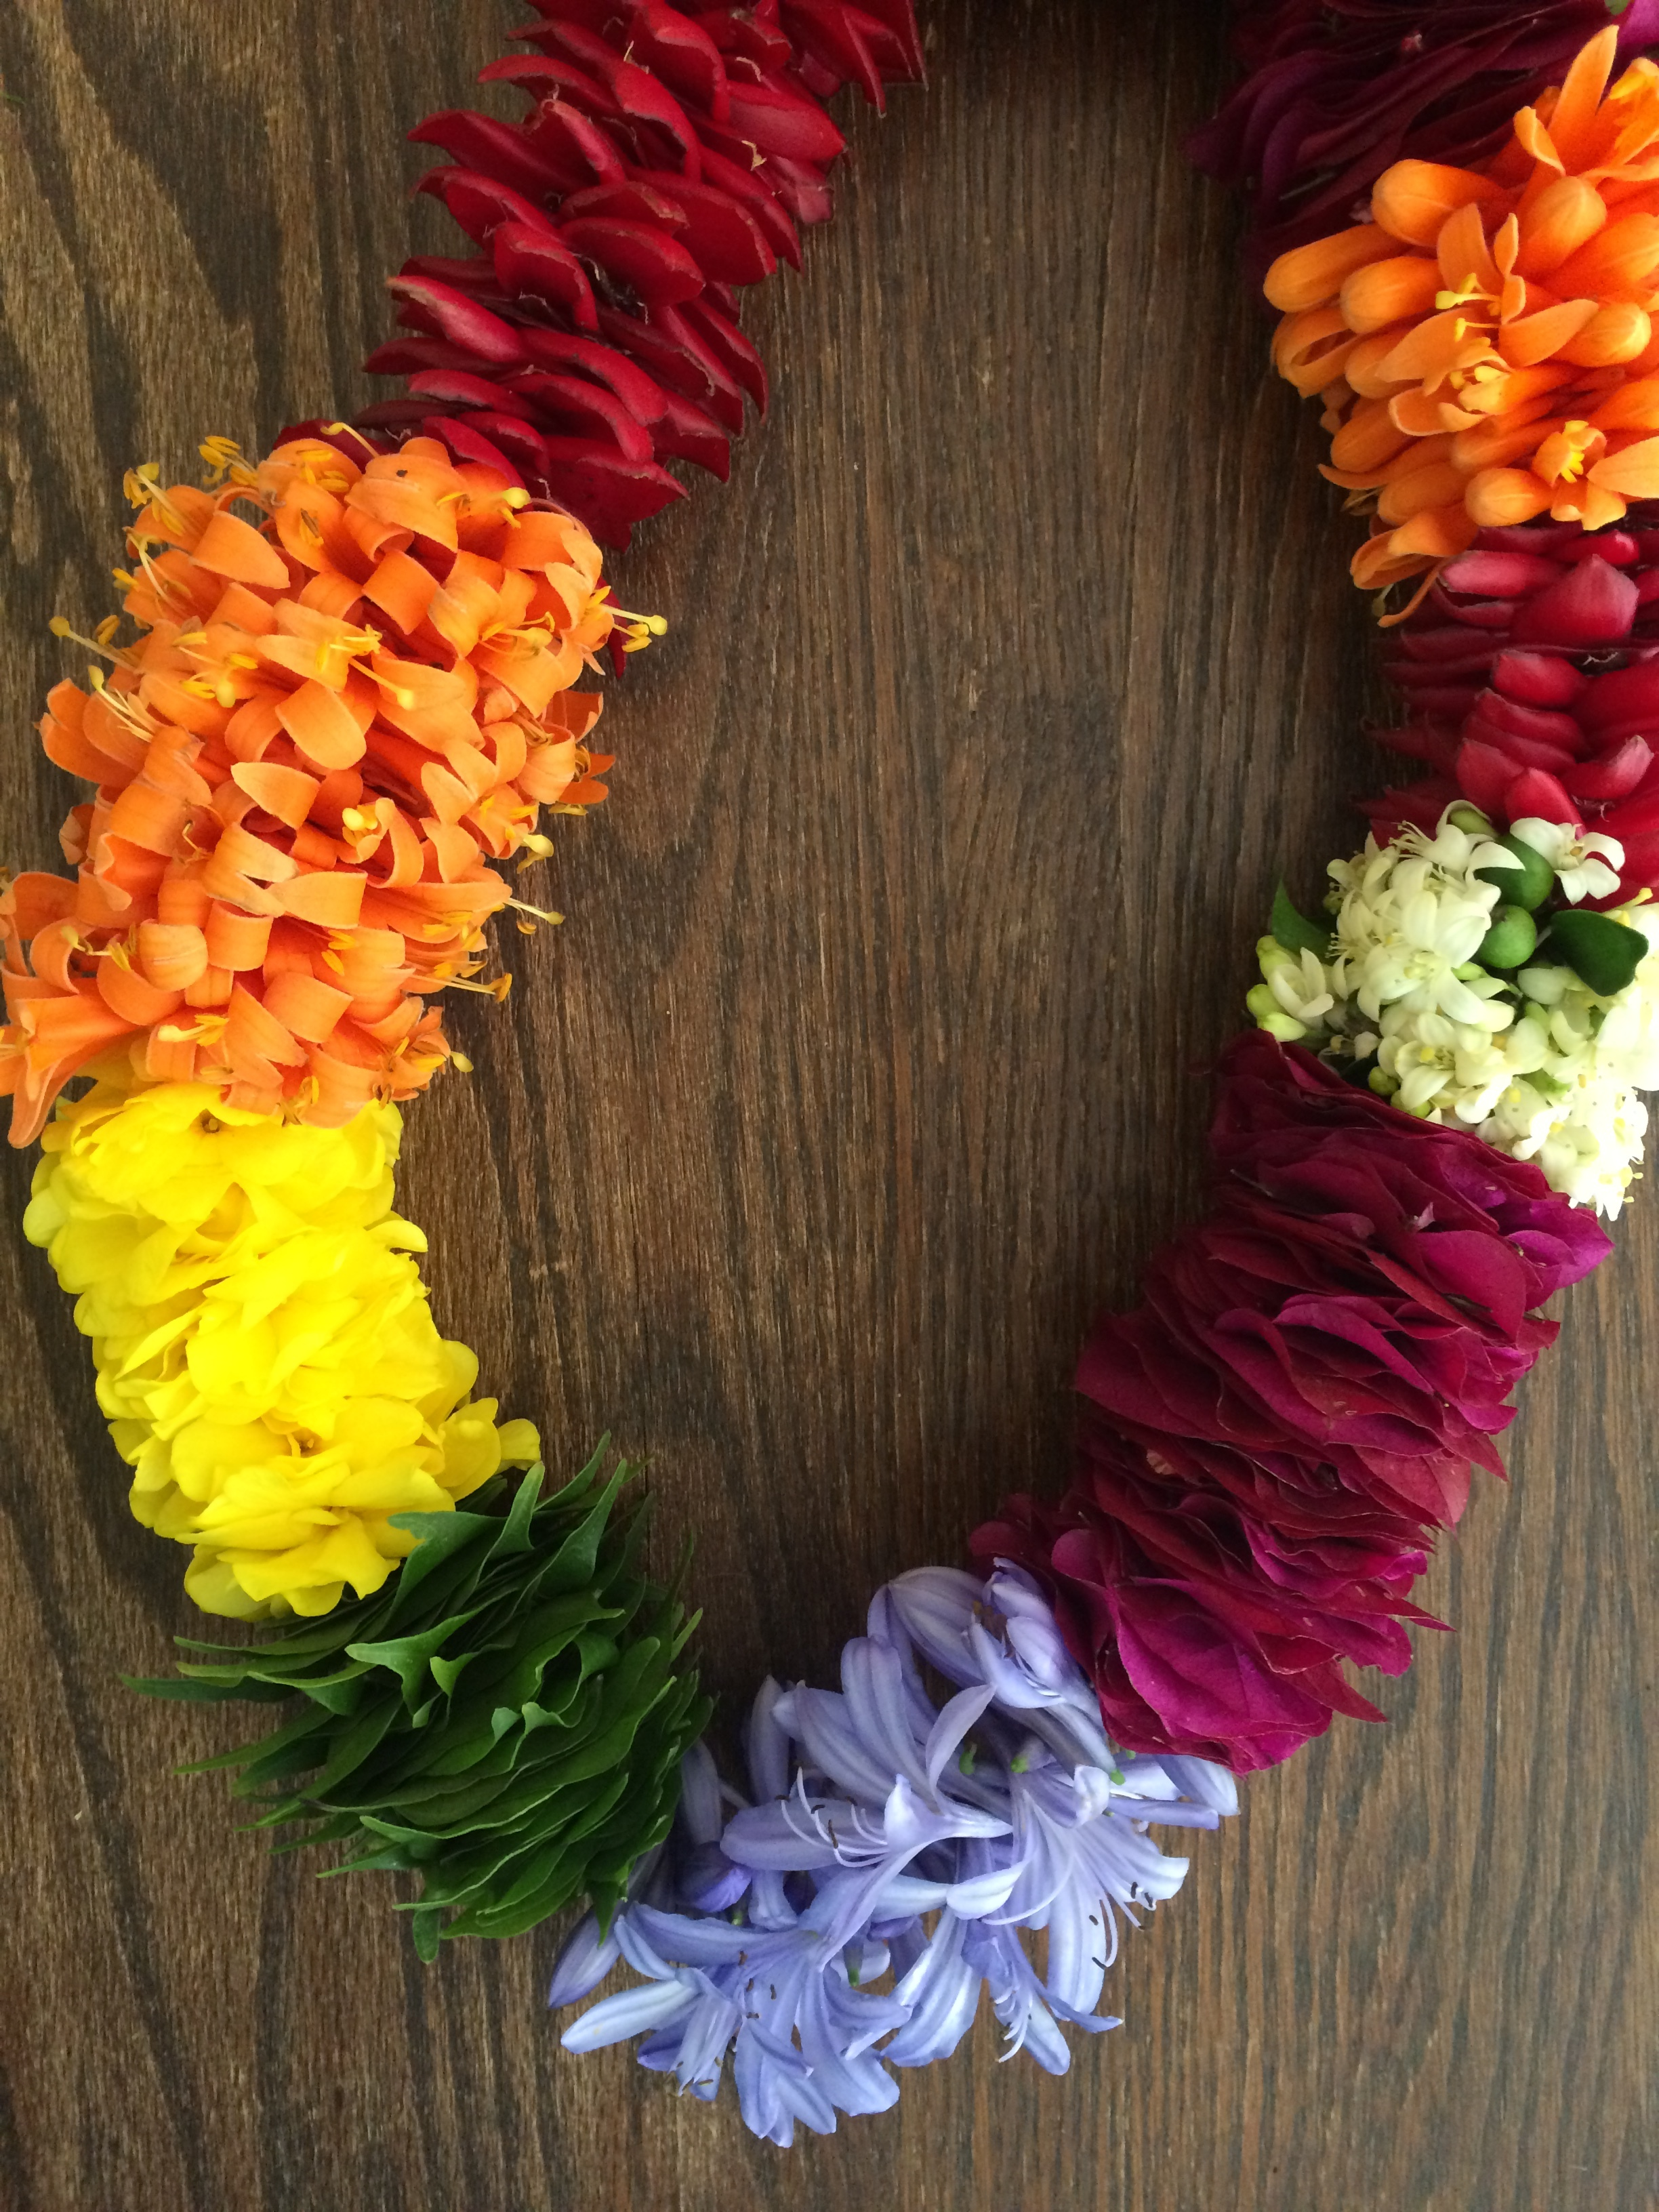 Rainbow Lei featuring a combination of various leaves and flowers found on Maui.   Made with a gradient of Ginger flower petals, Orange Trumpet vine, Maile leaves, Agapanthus flowers, Bougainvillea, and Mock Orange.